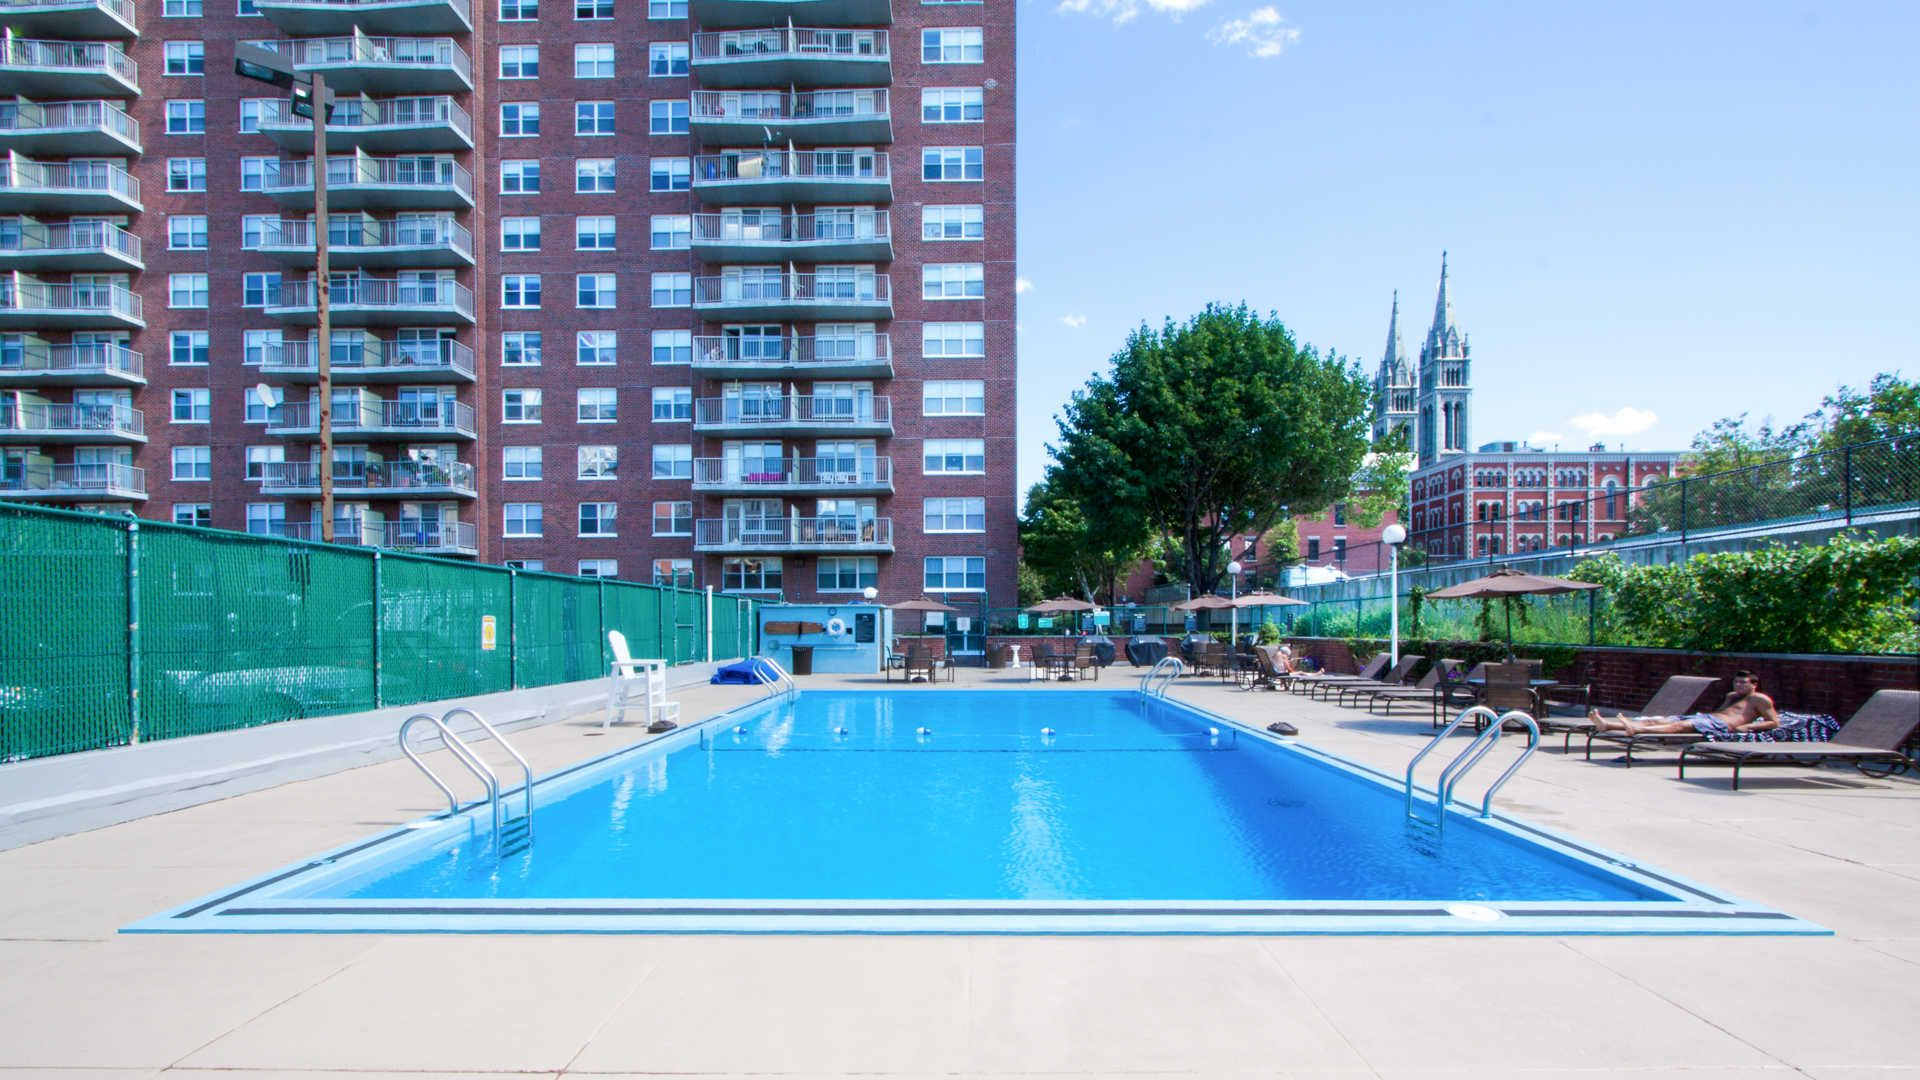 Beautiful Pool At This Boston Massachusetts Luxury Apartment Building Reach Out To Me If Interested In R Boston Real Estate Beautiful Pools Luxury Apartments